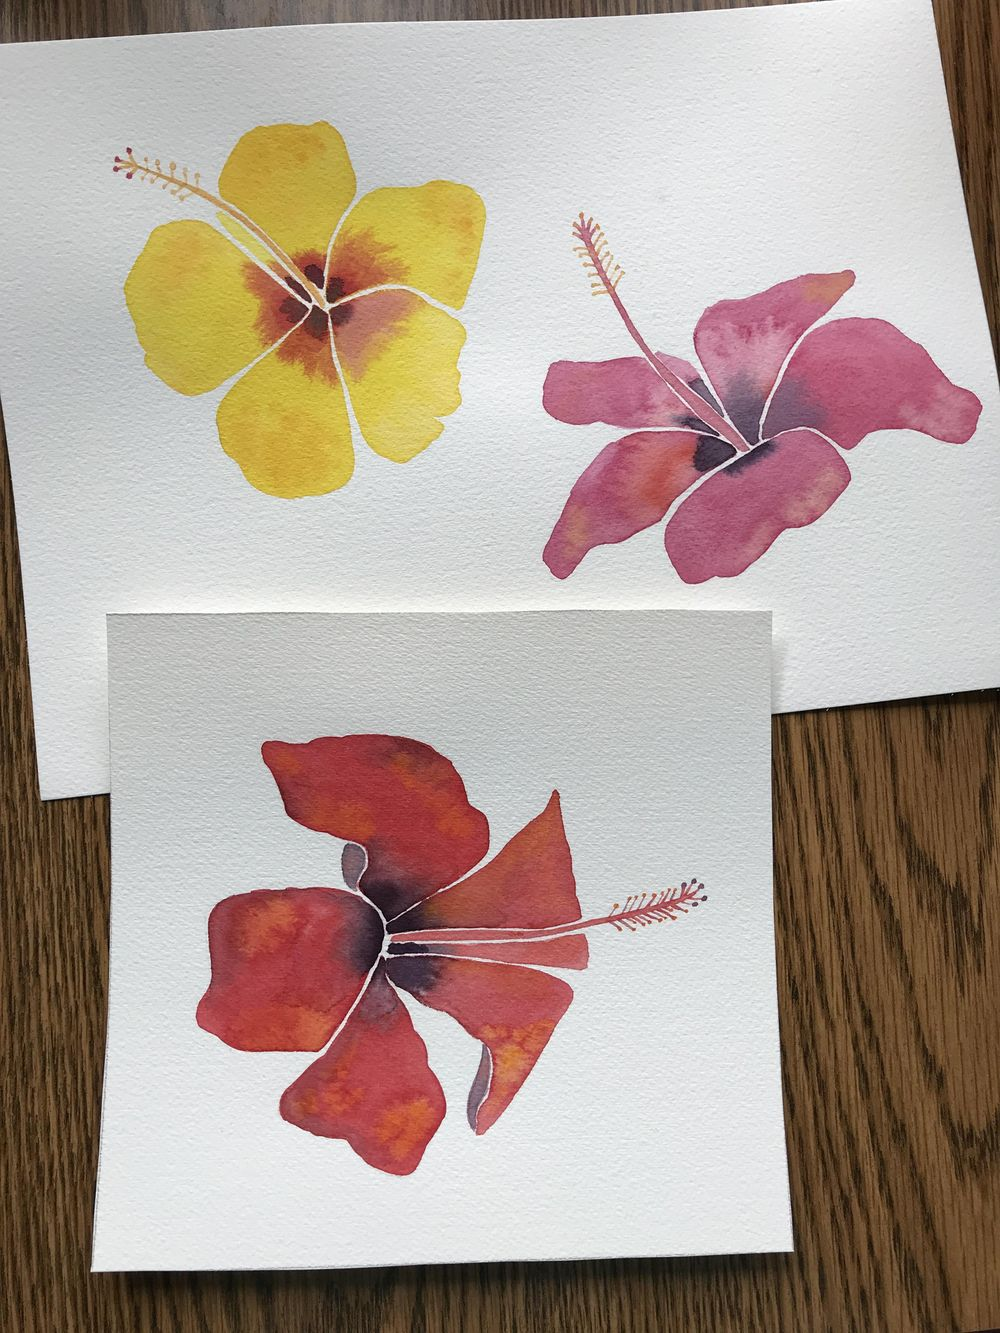 Modern Botanical Watercolor Paintings - image 5 - student project